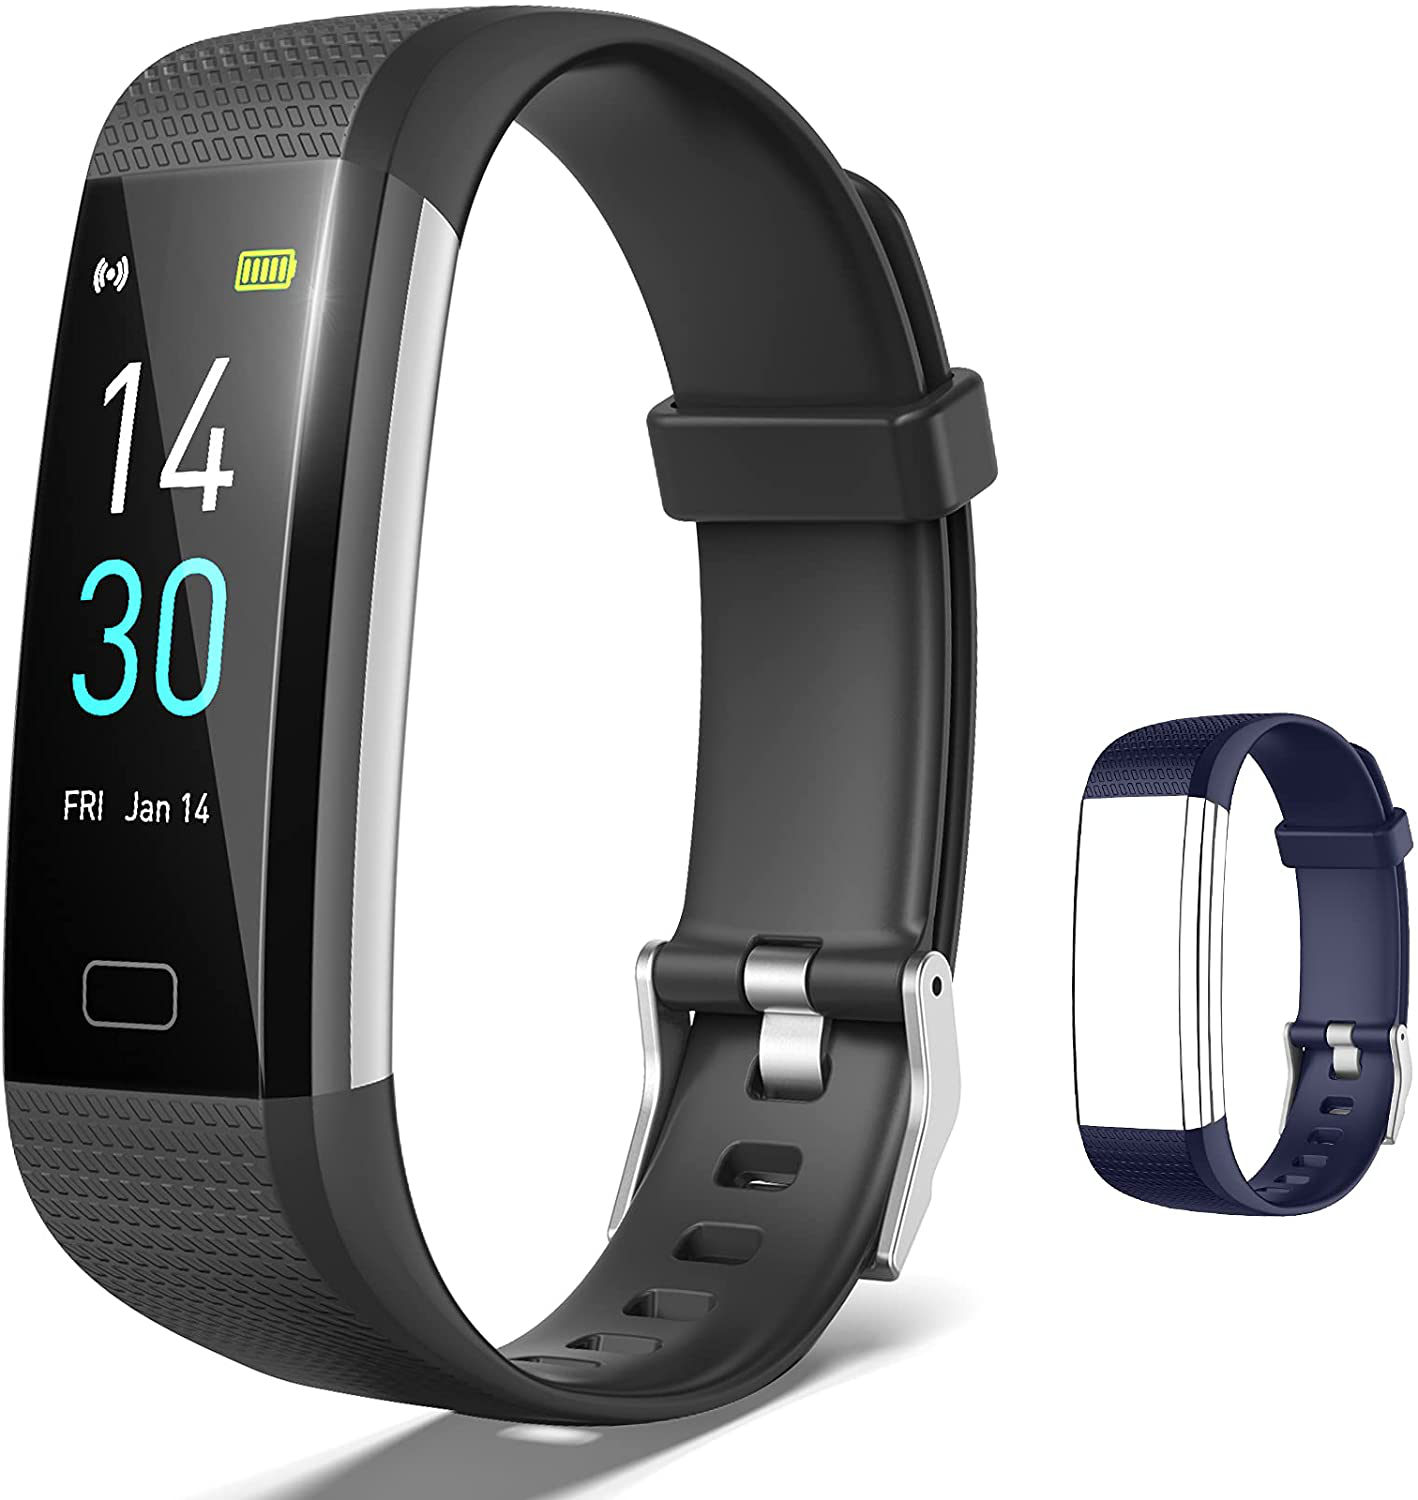 Fitness Tracker with Heart Rate Monitor, Cattle Herder Activity Tracker Watch Wa activity cattle fitness heart herder rate tracker watch with